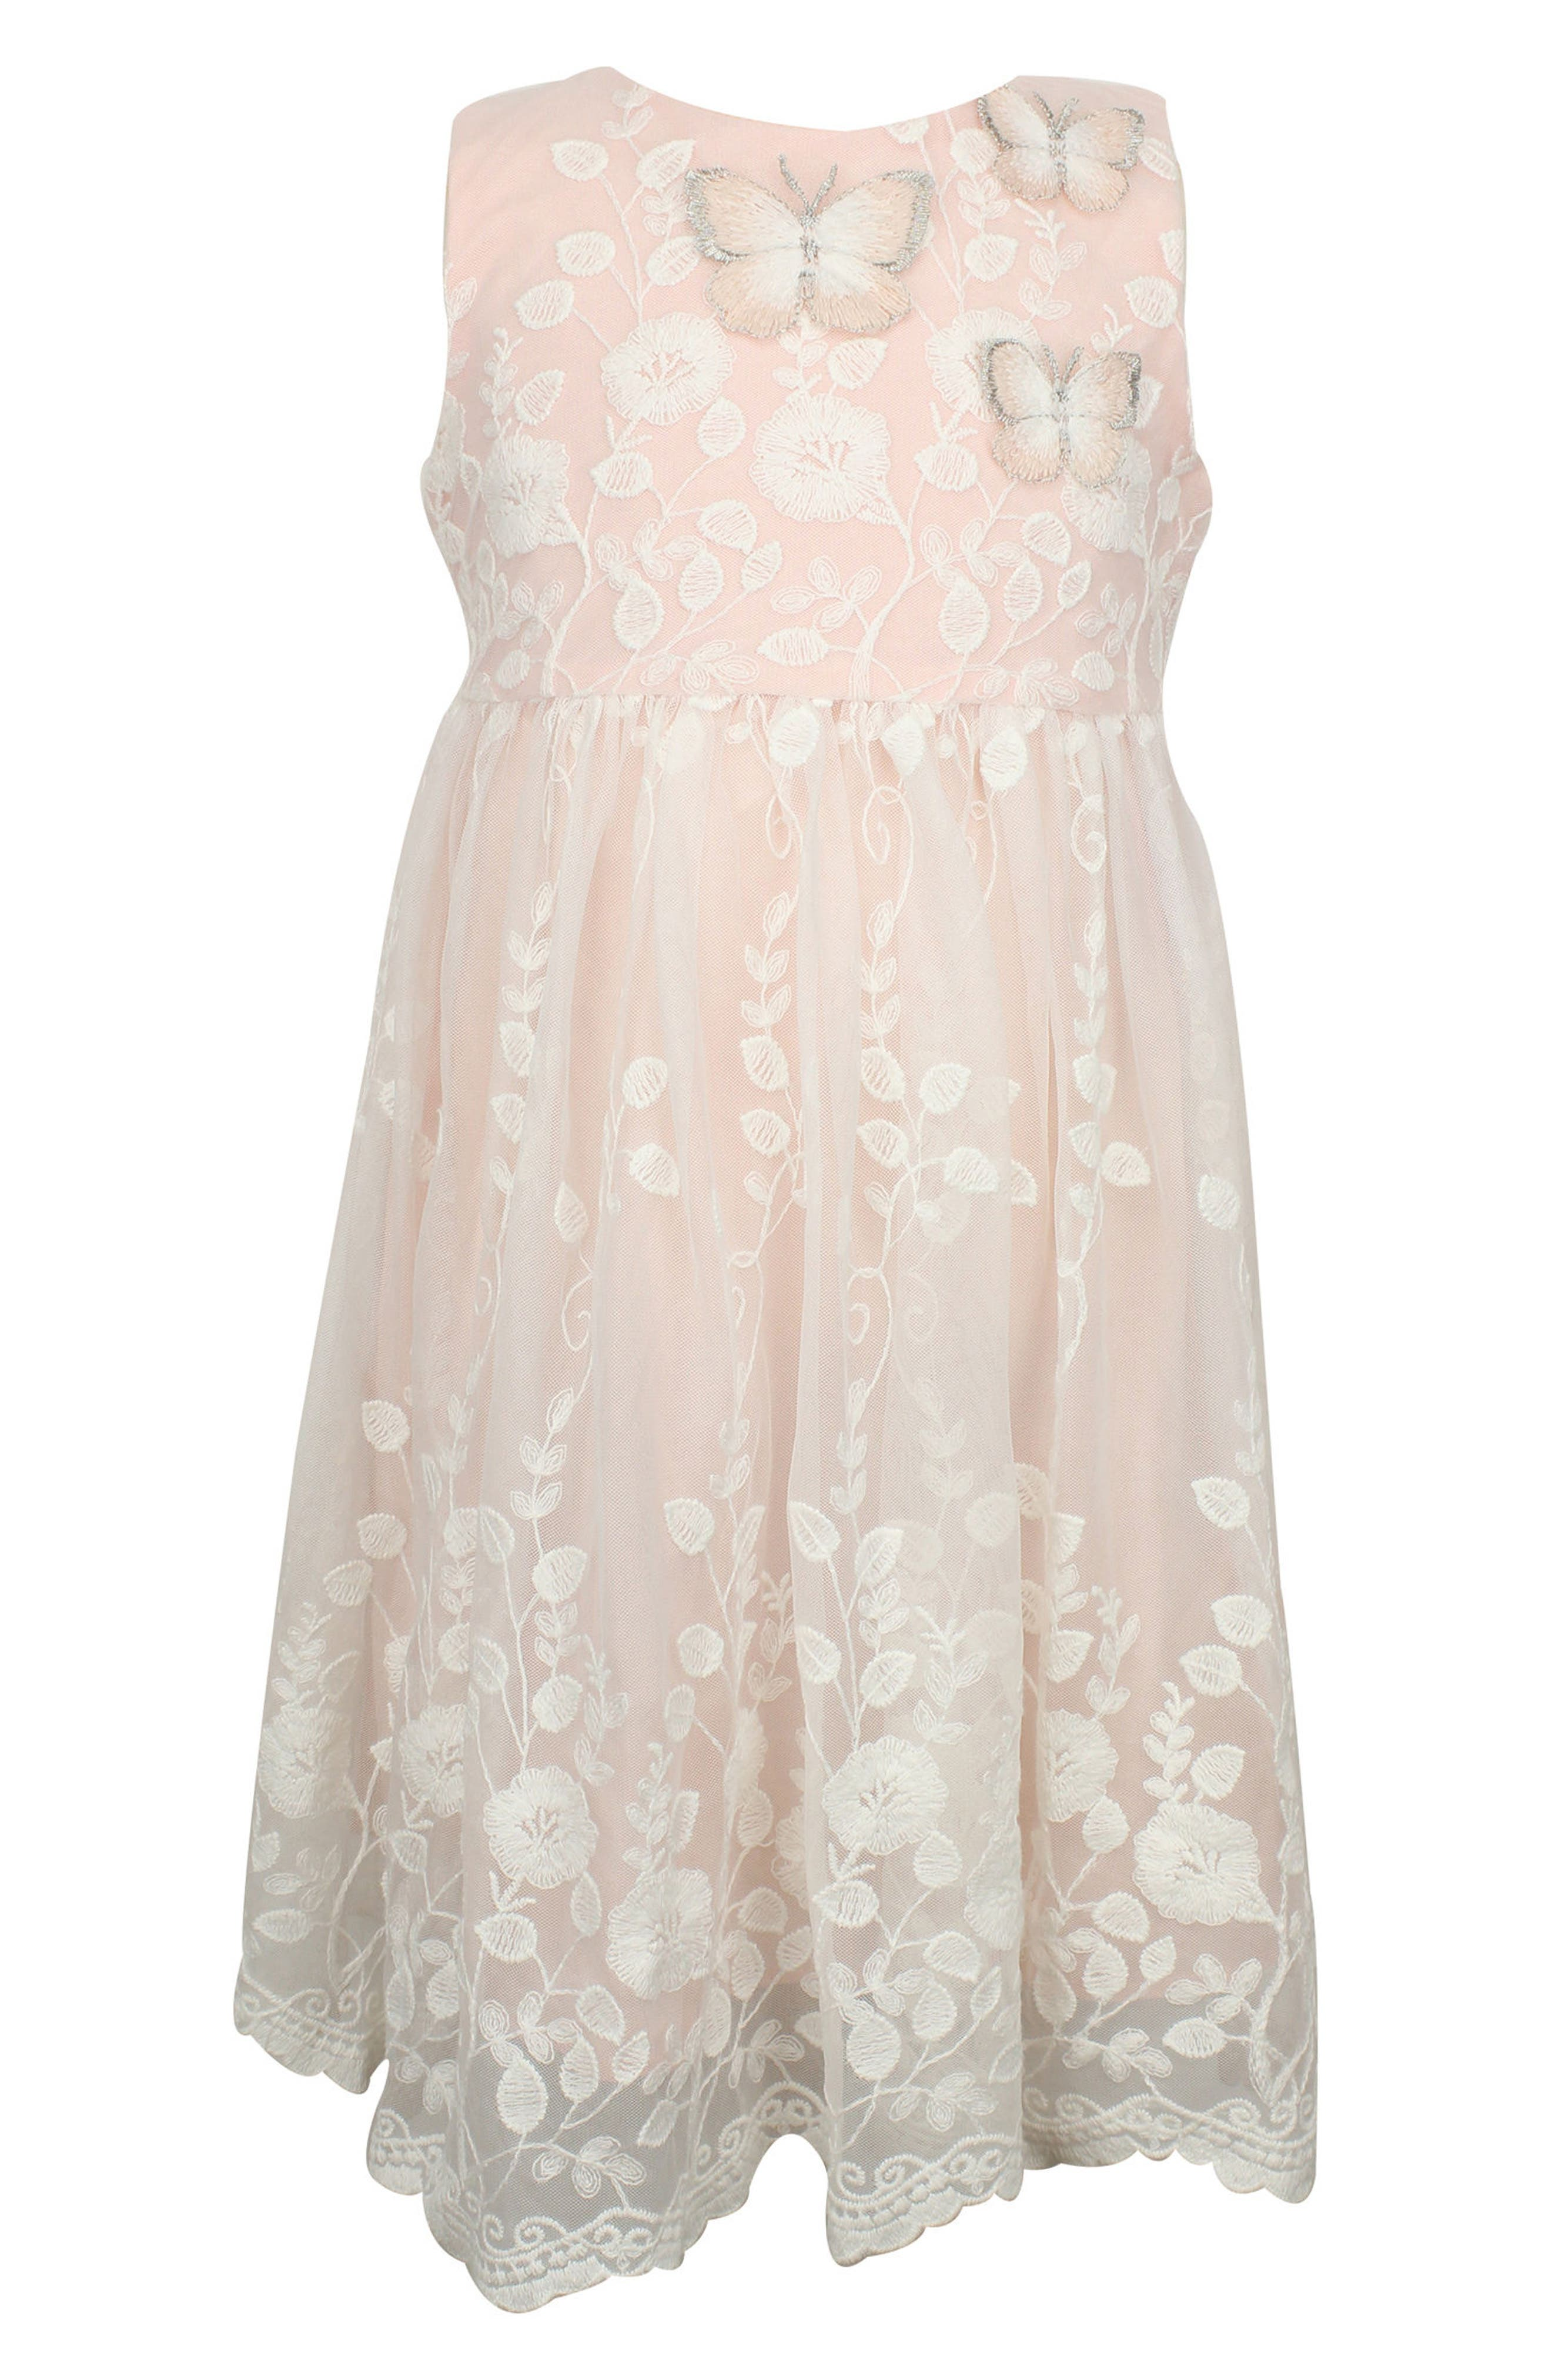 Alternate Image 1 Selected - Popatu Lace Overlay Sleeveless Dress (Baby Girls)